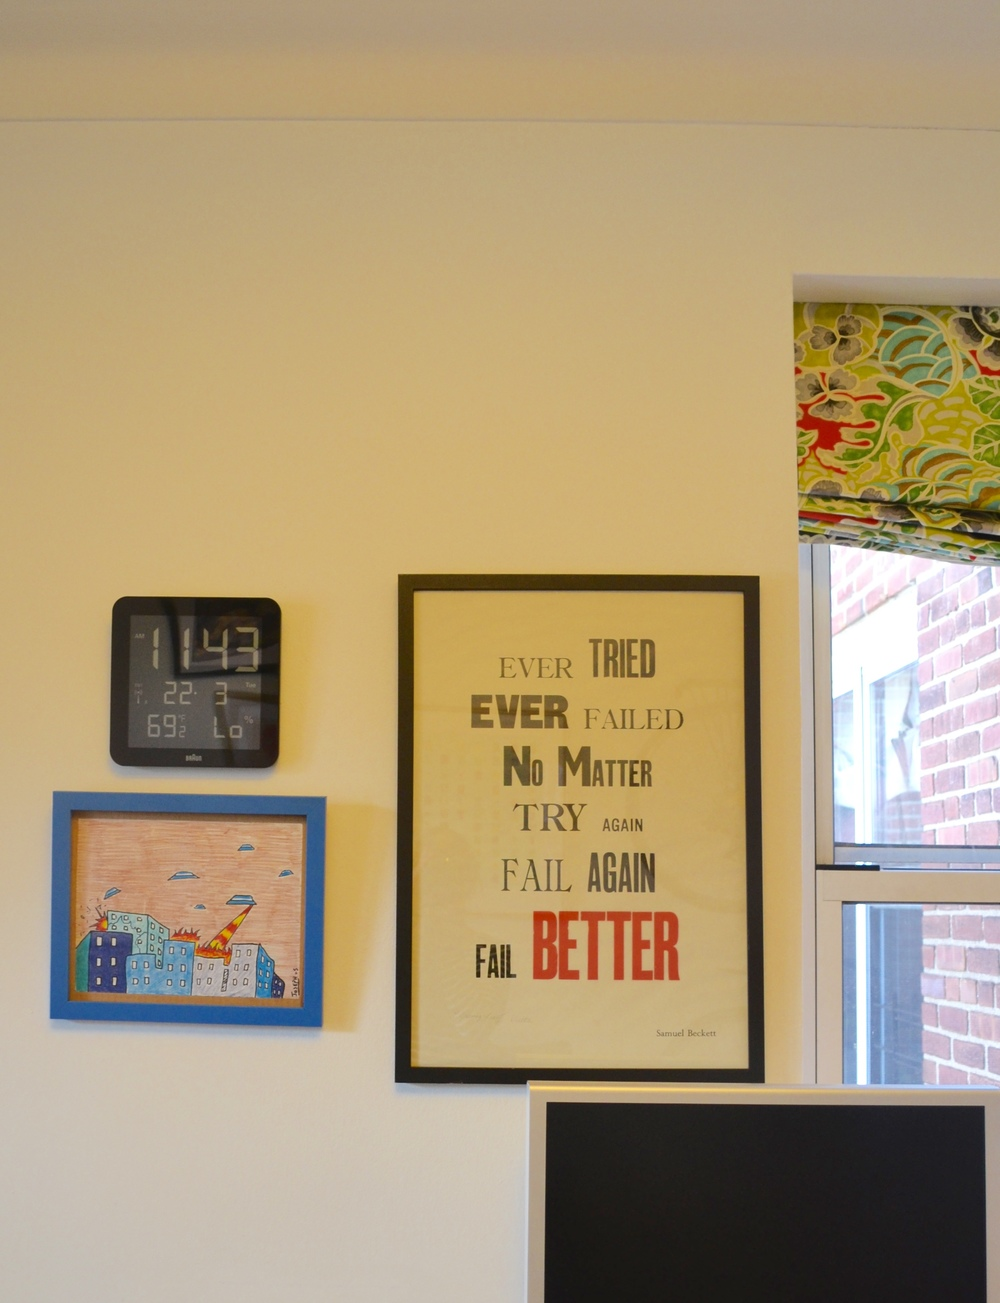 Fun art and window treatment by, you guessed it! Client Crafty.